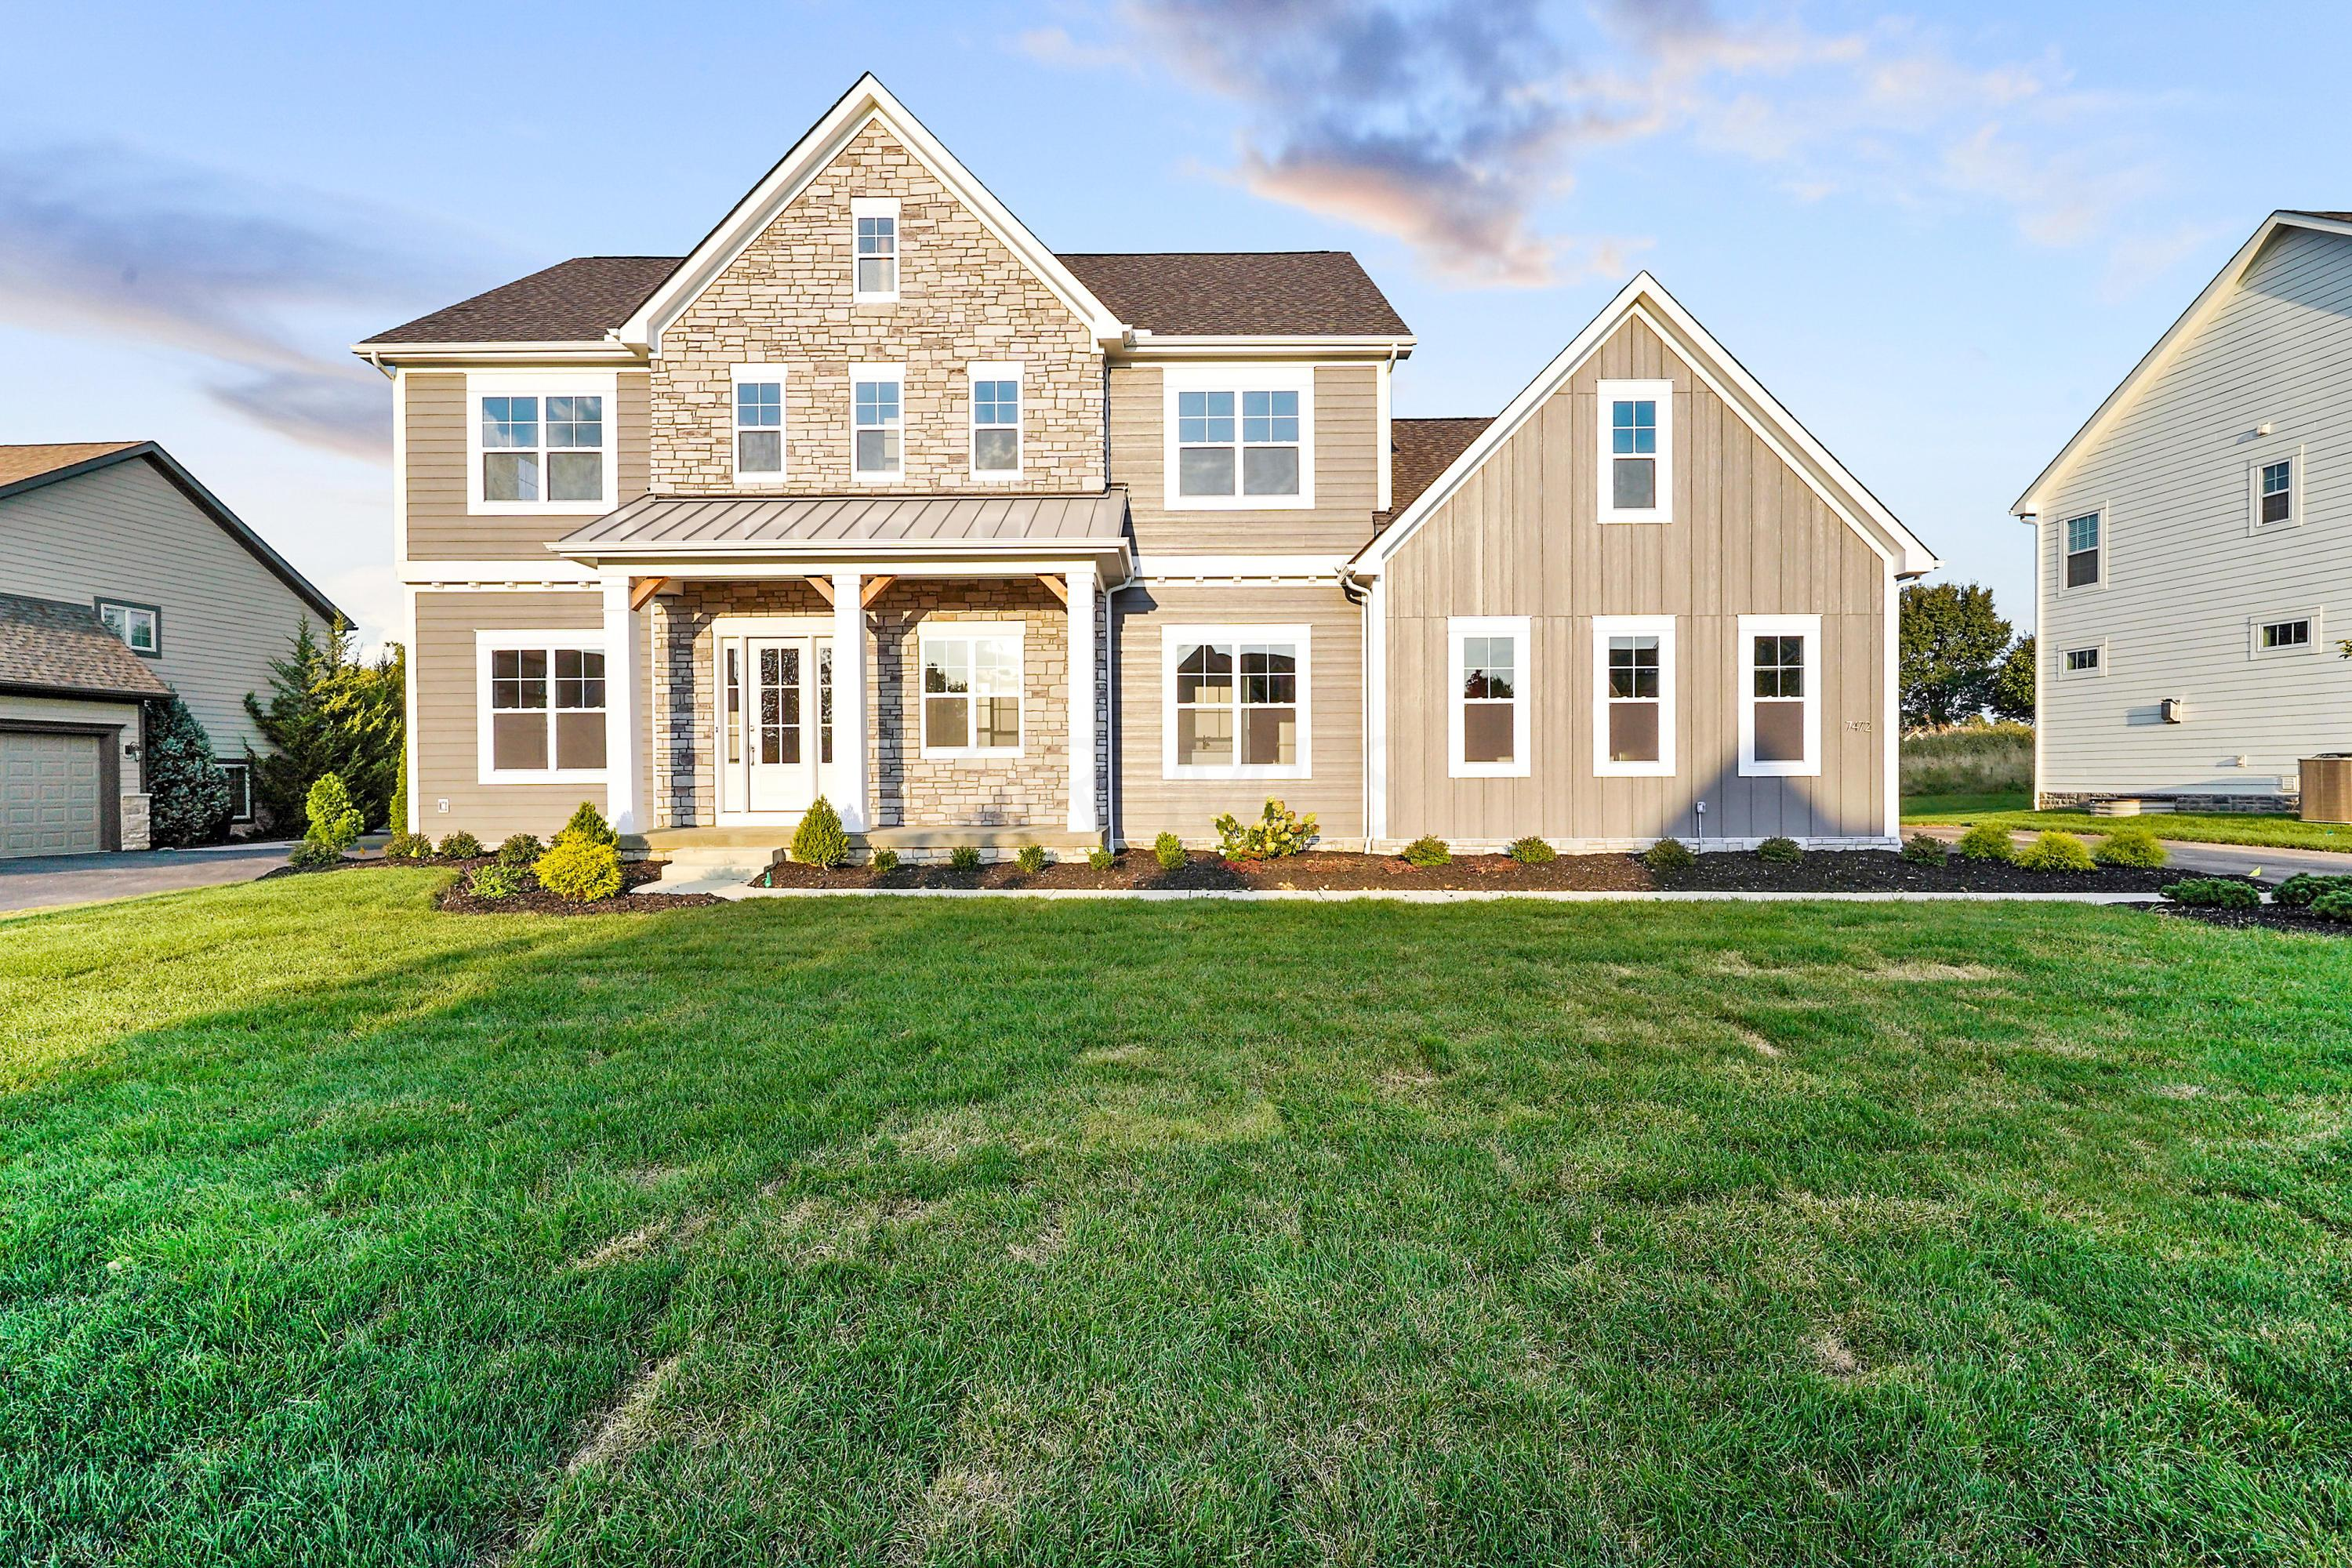 Photo of 7472 New Albany Links Drive, New Albany, OH 43054